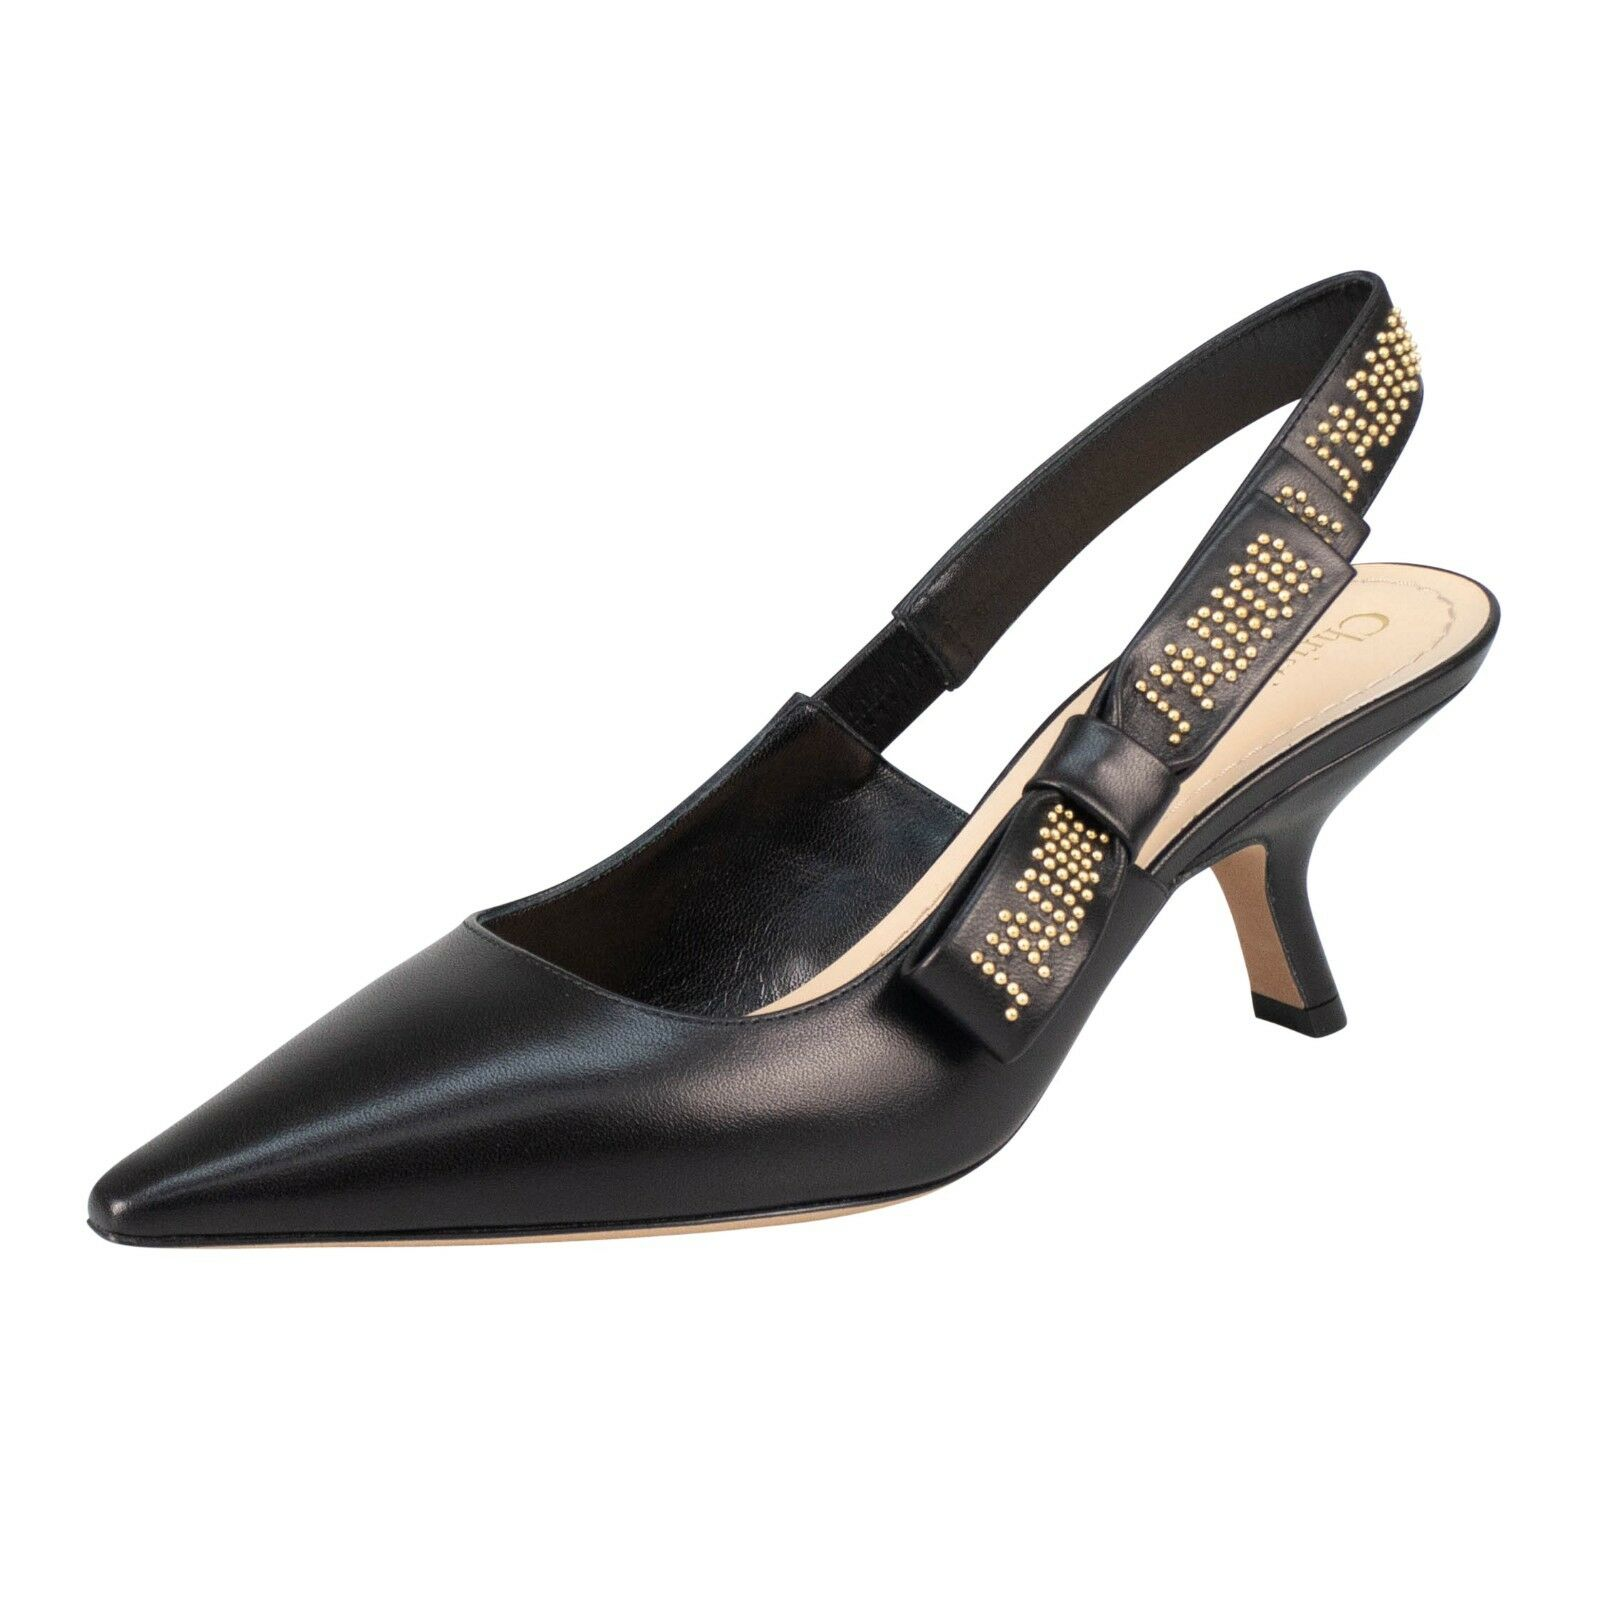 NIB CHRISTIAN DIOR Black And gold J'ADIOR Leather Slingback Pumps shoes 6.5 36.5